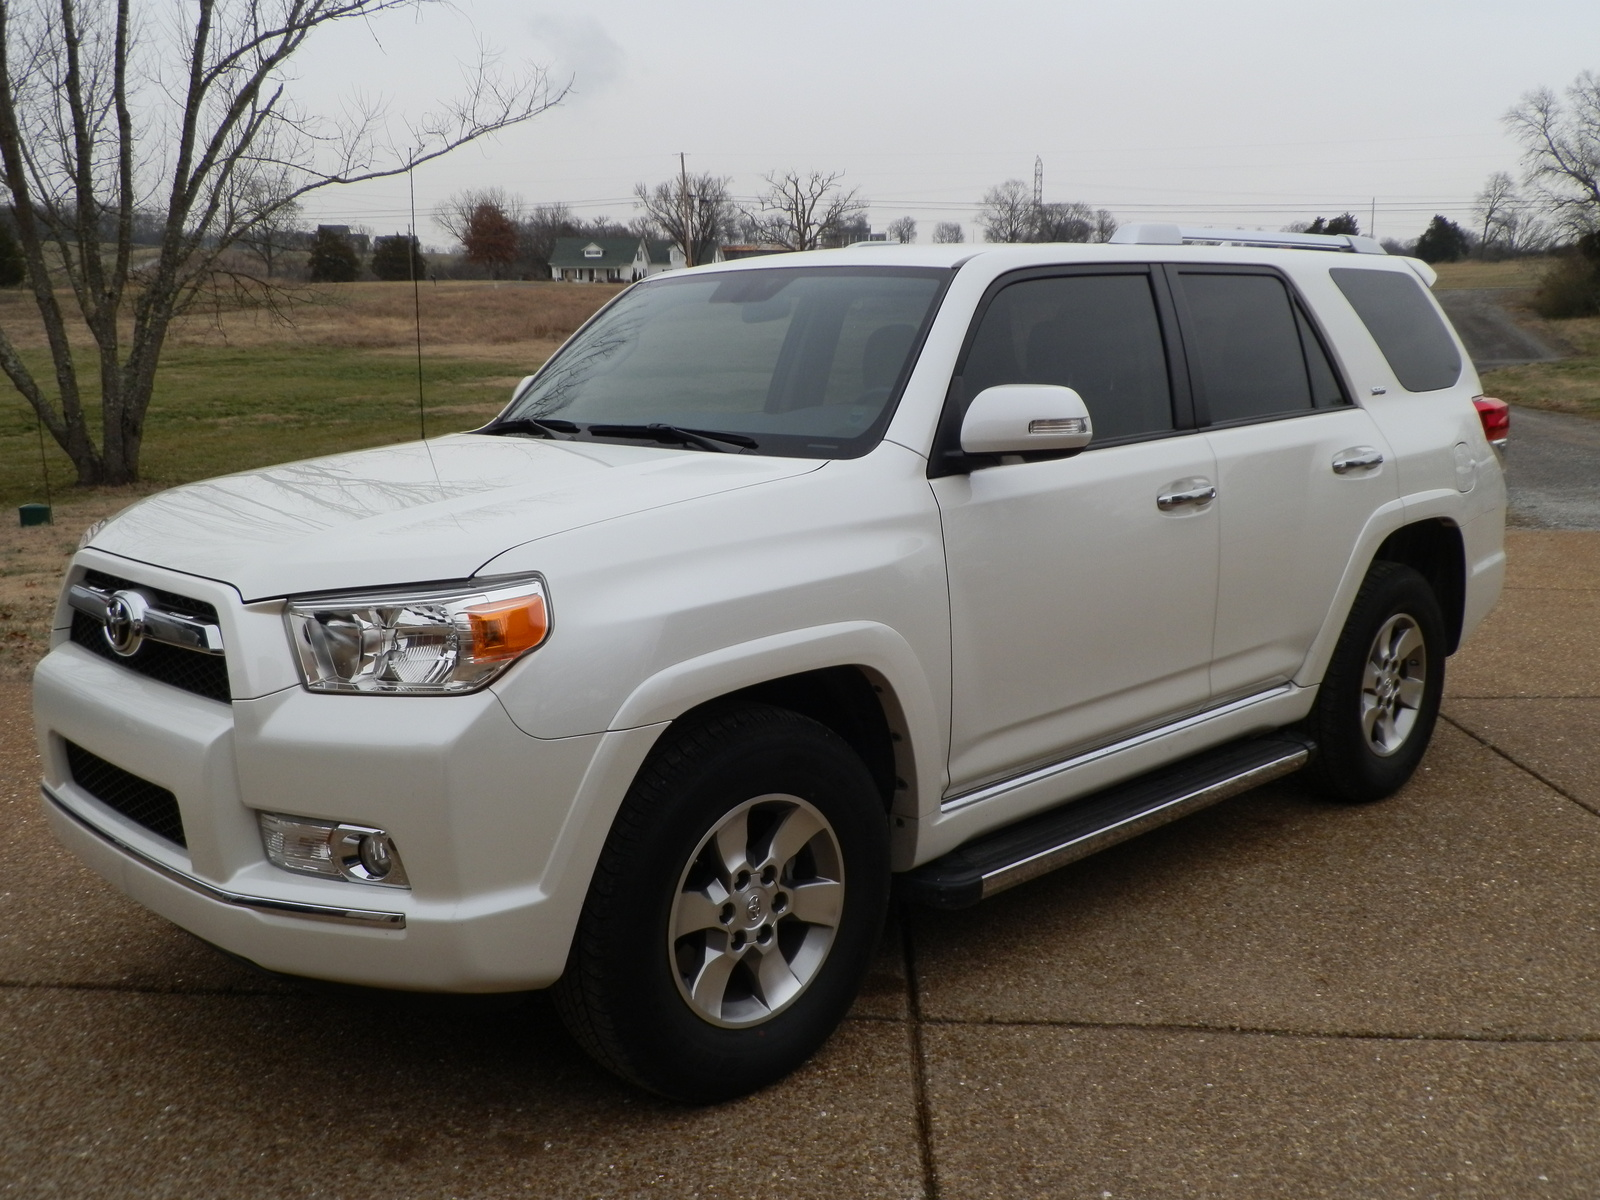 used toyota 4runner for sale cargurus used cars new. Black Bedroom Furniture Sets. Home Design Ideas